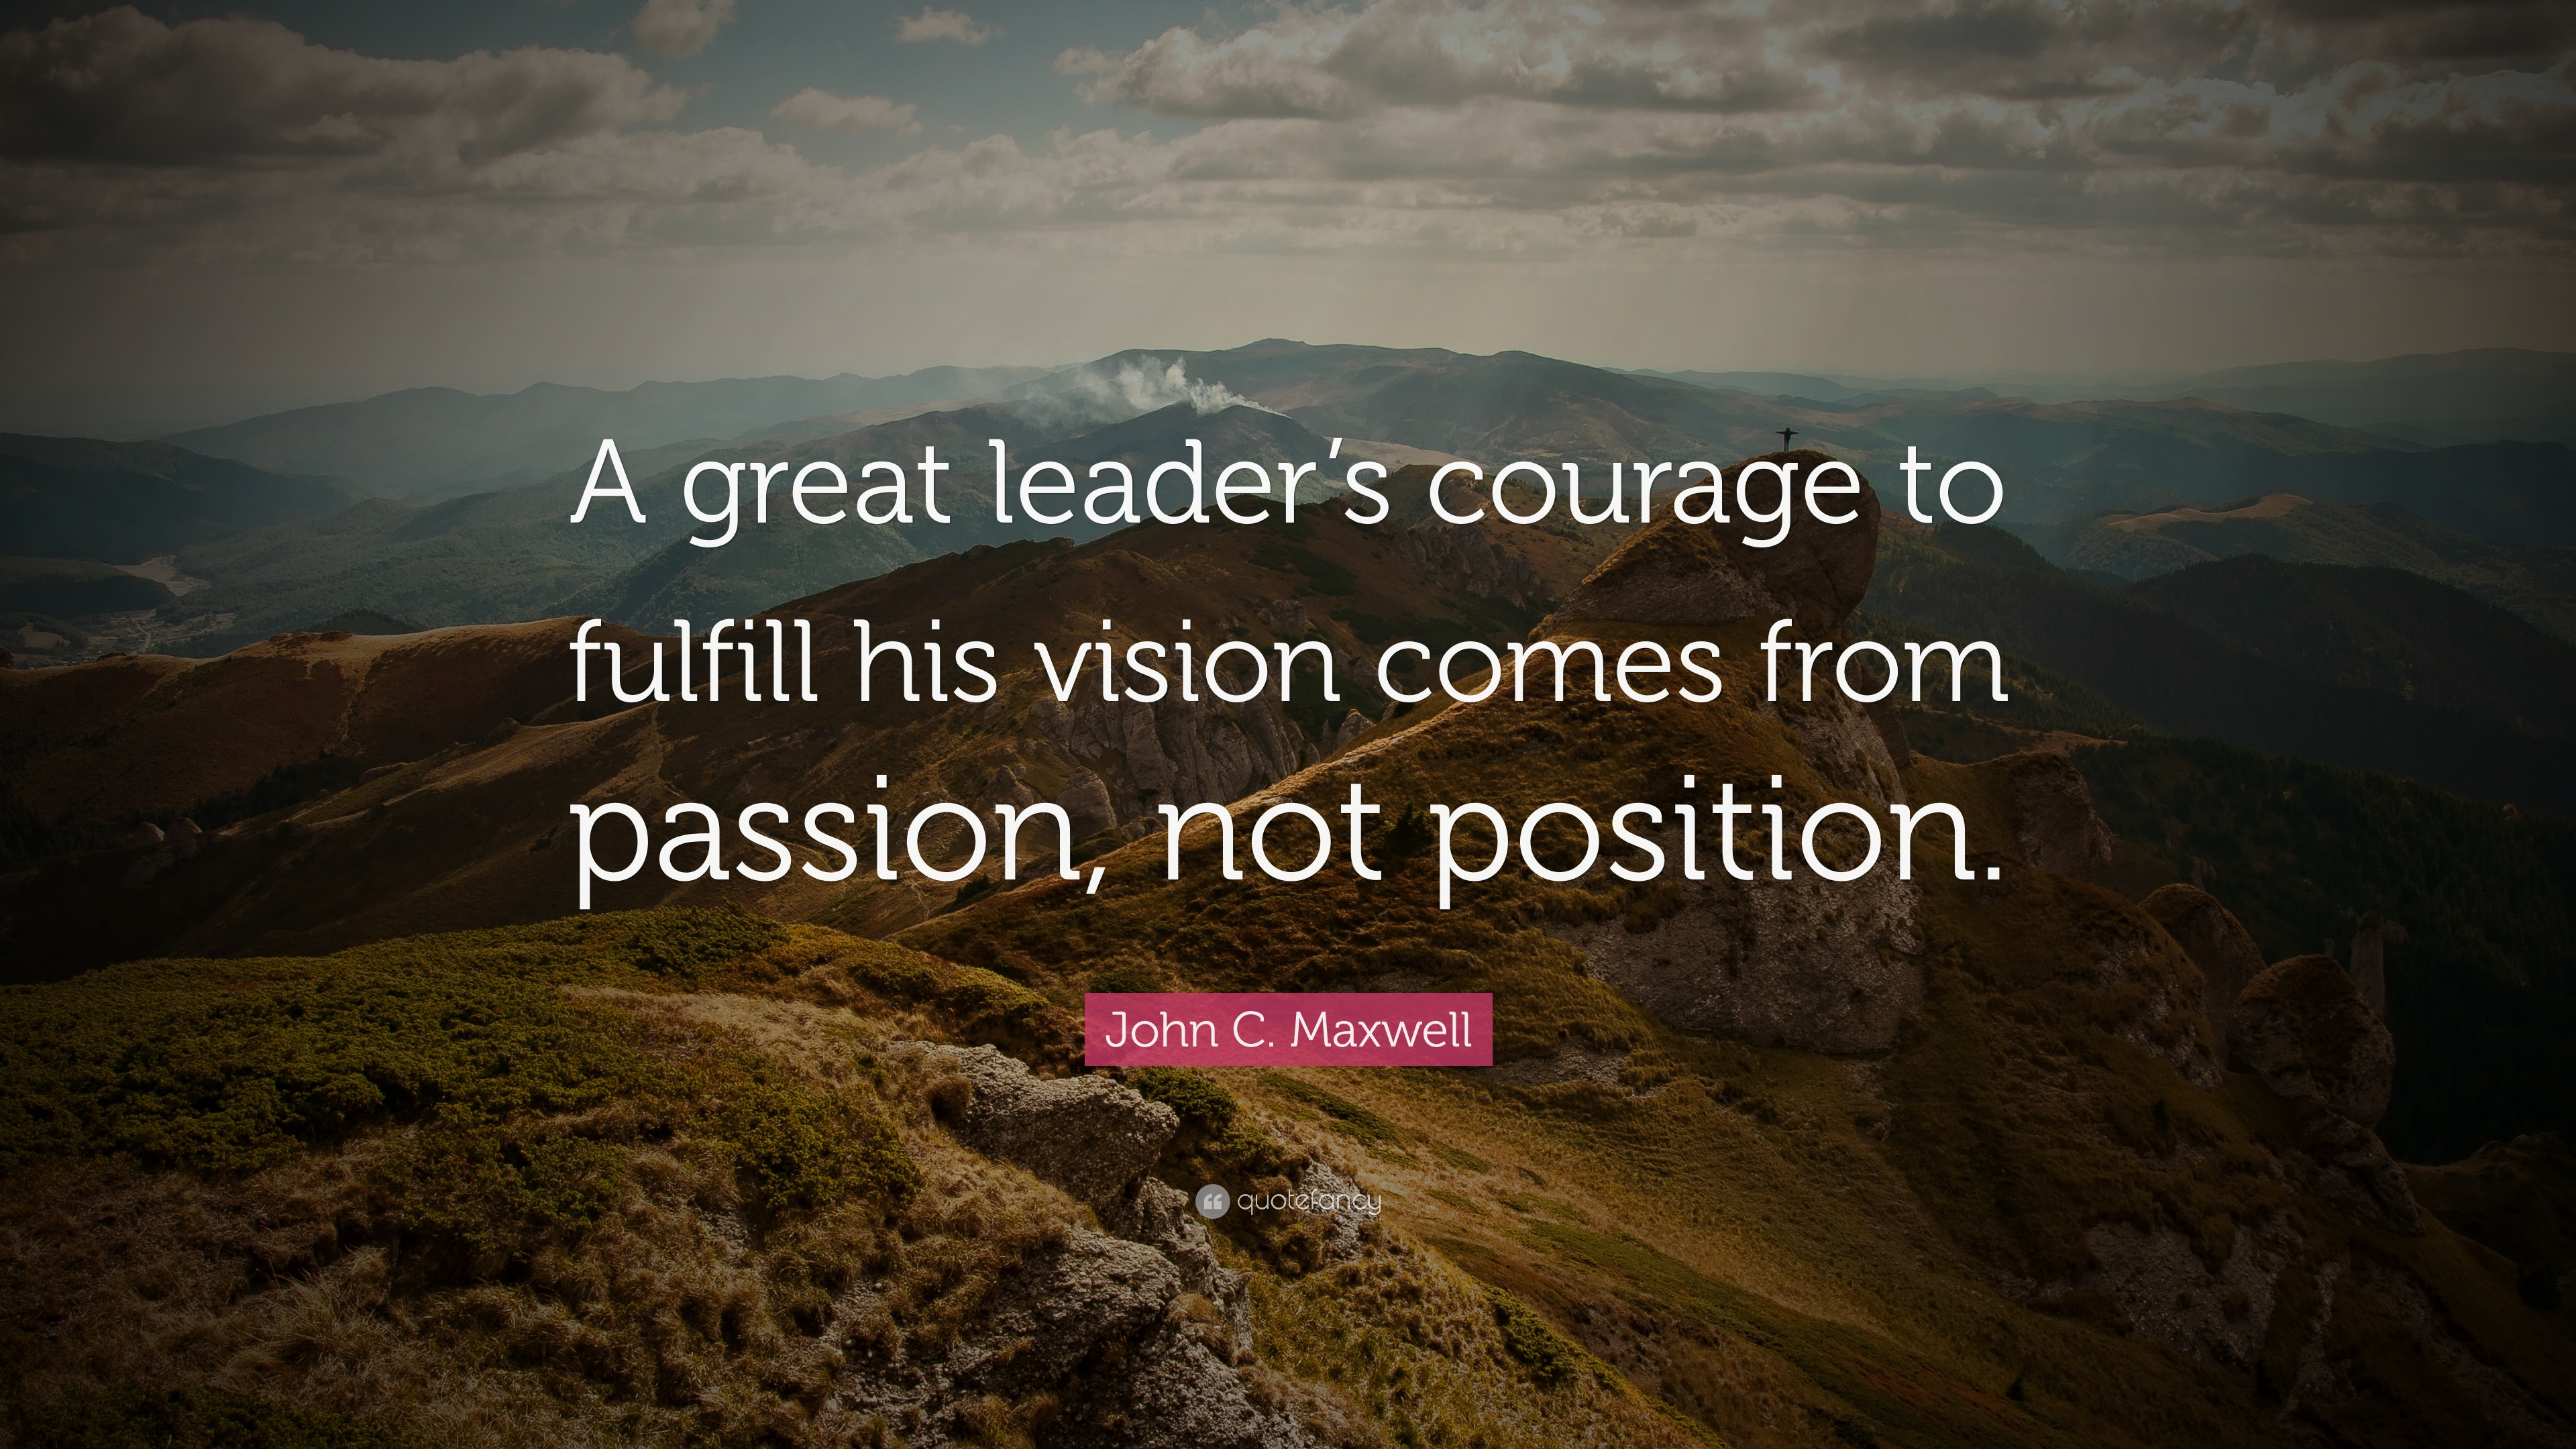 john c  maxwell quote   u201ca great leader u2019s courage to